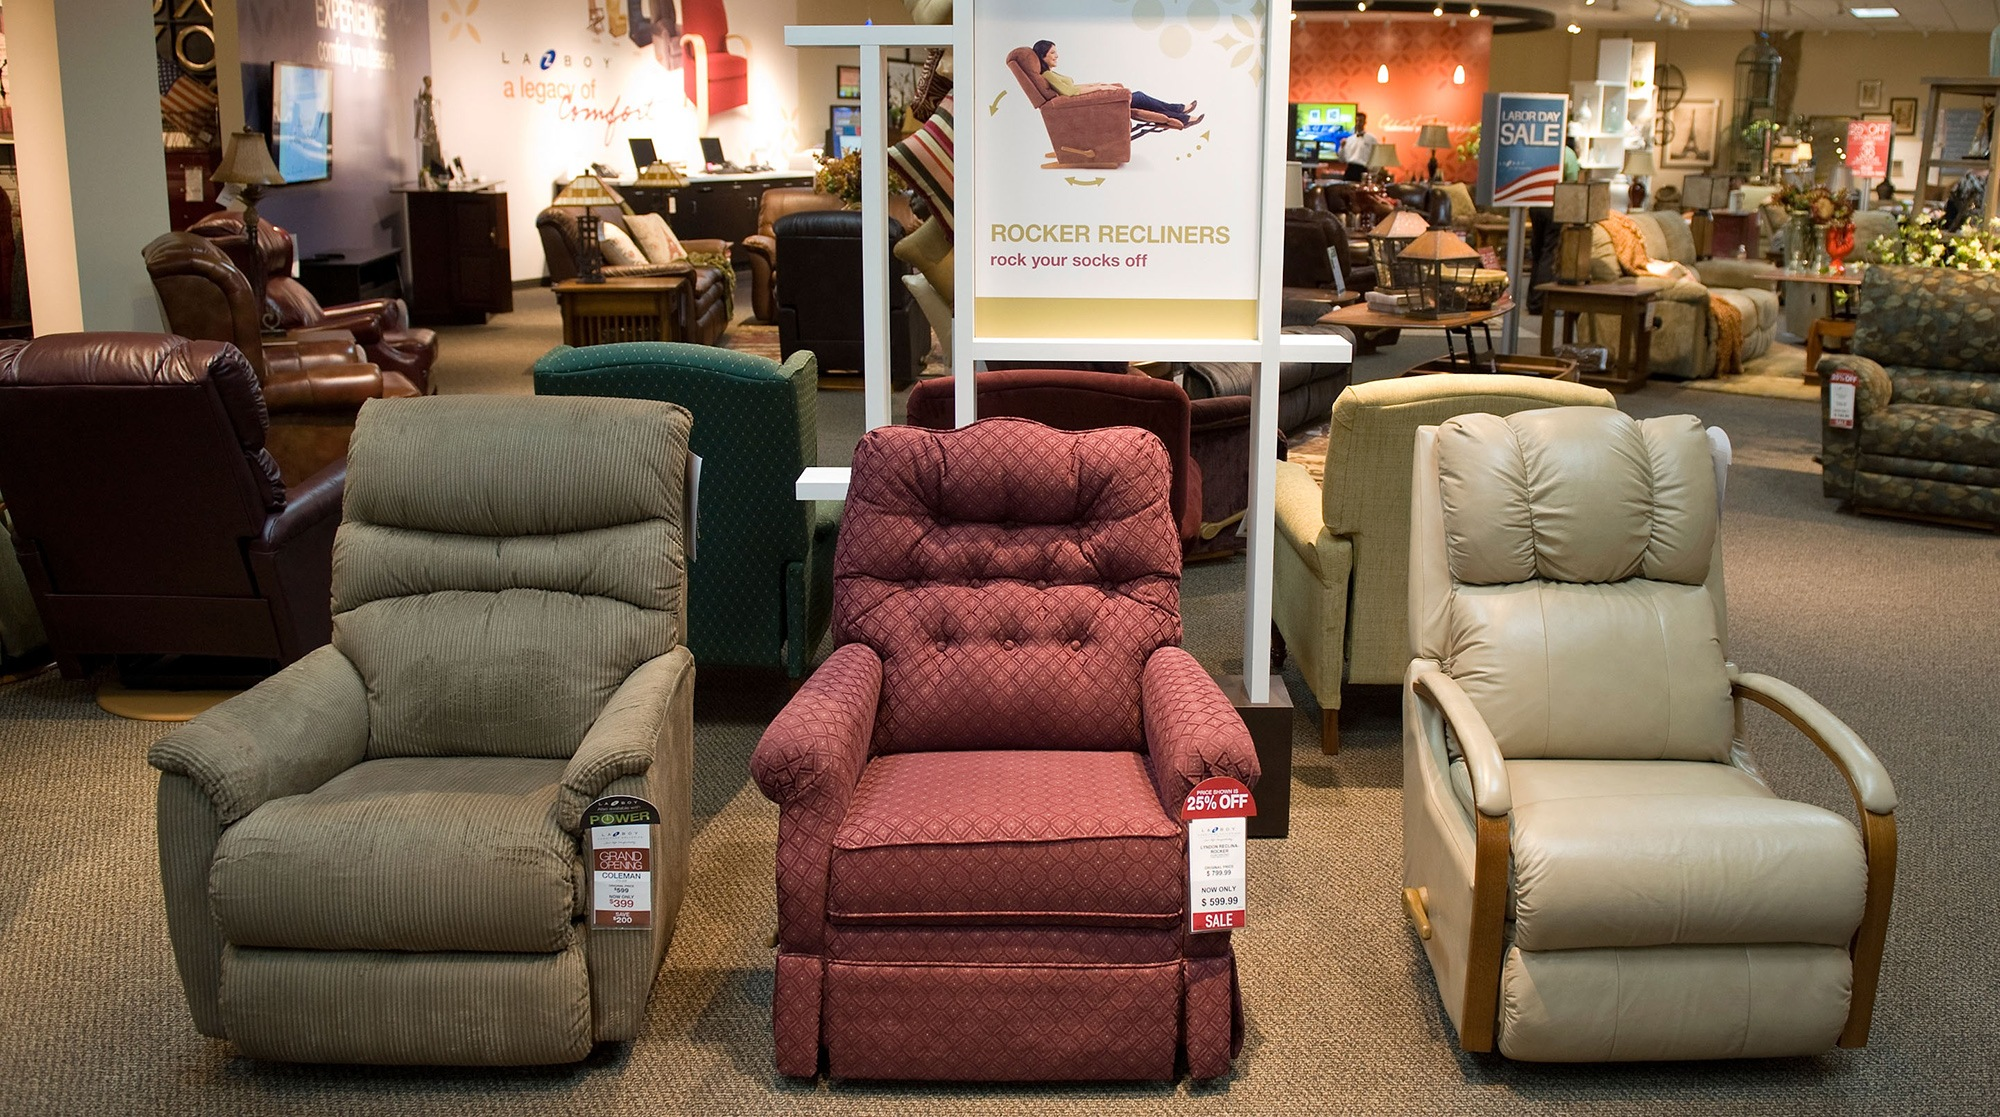 Recliners in Store